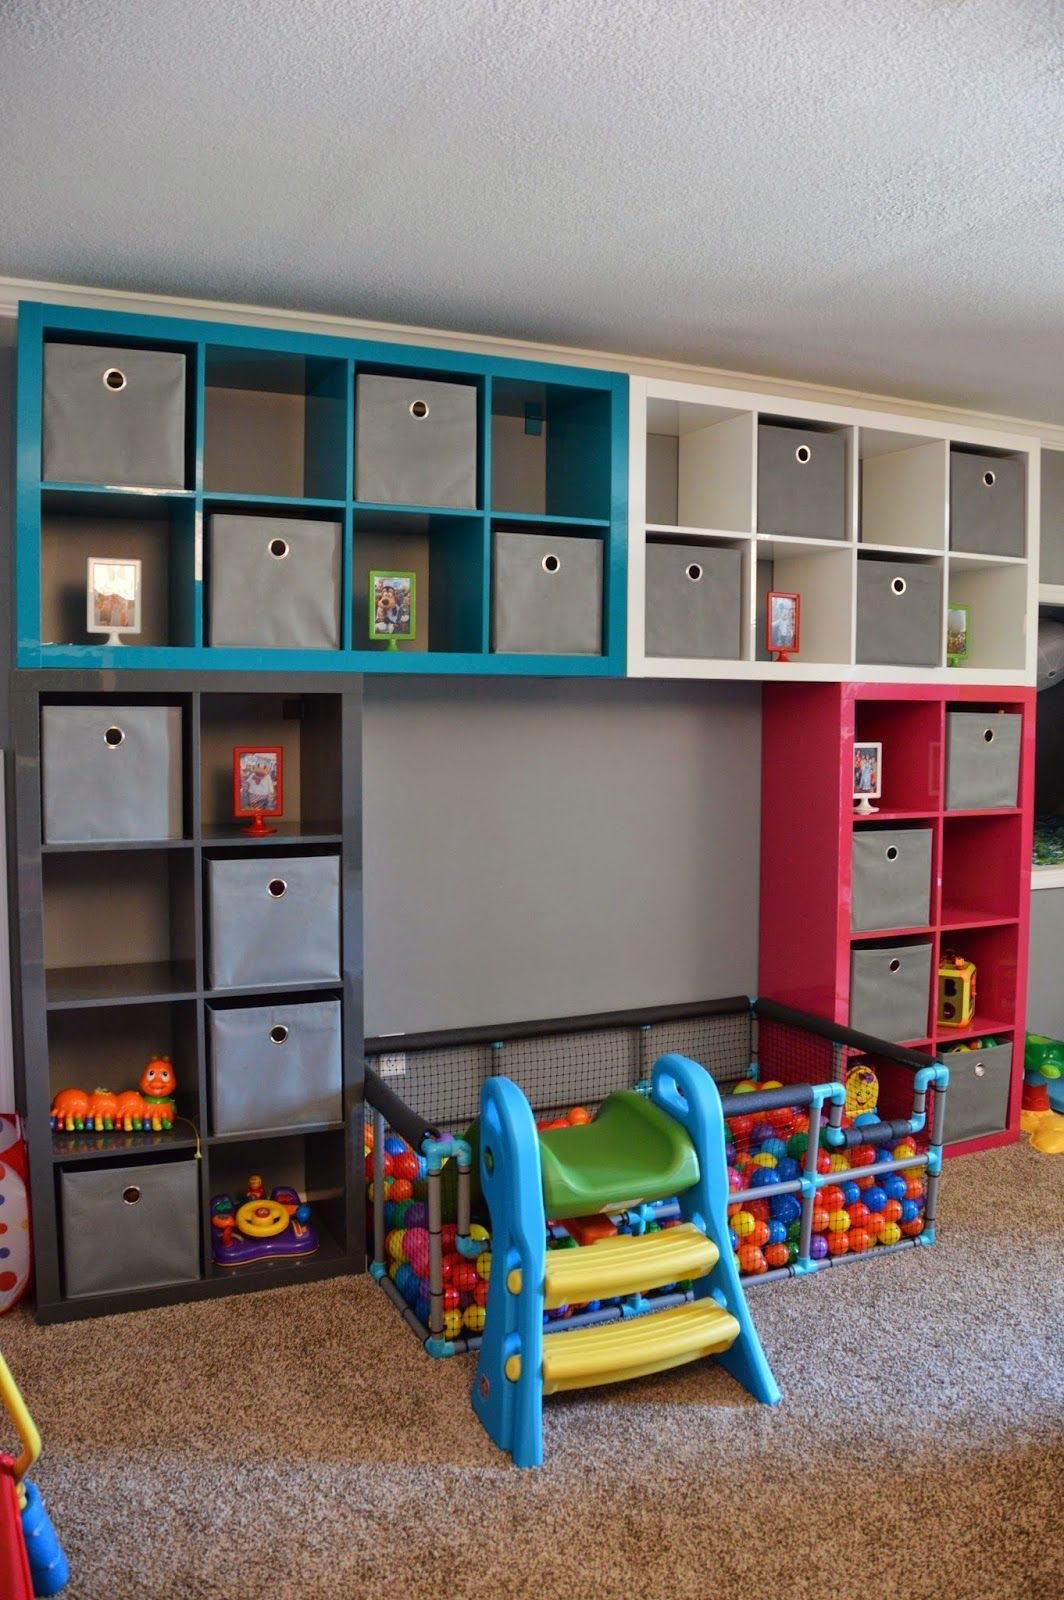 7 1 Toy Storage Ideas 2019 Diy Plans In A Small Space Toy Rooms